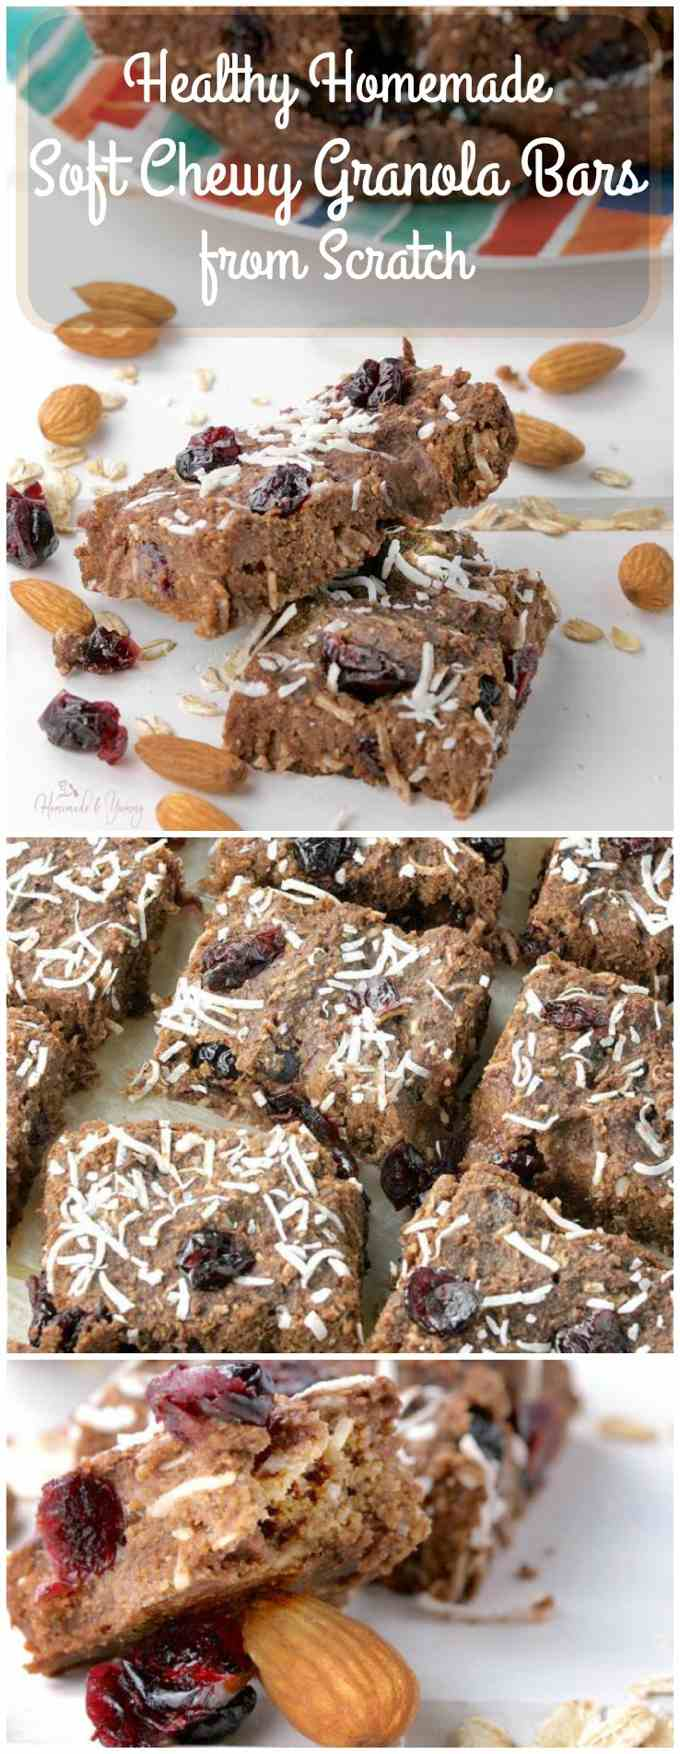 Healthy Homemade Soft Chewy Granola Bars from Scratch. Nutrition with ingredients you can pronounce. | homemadeandyummy.com